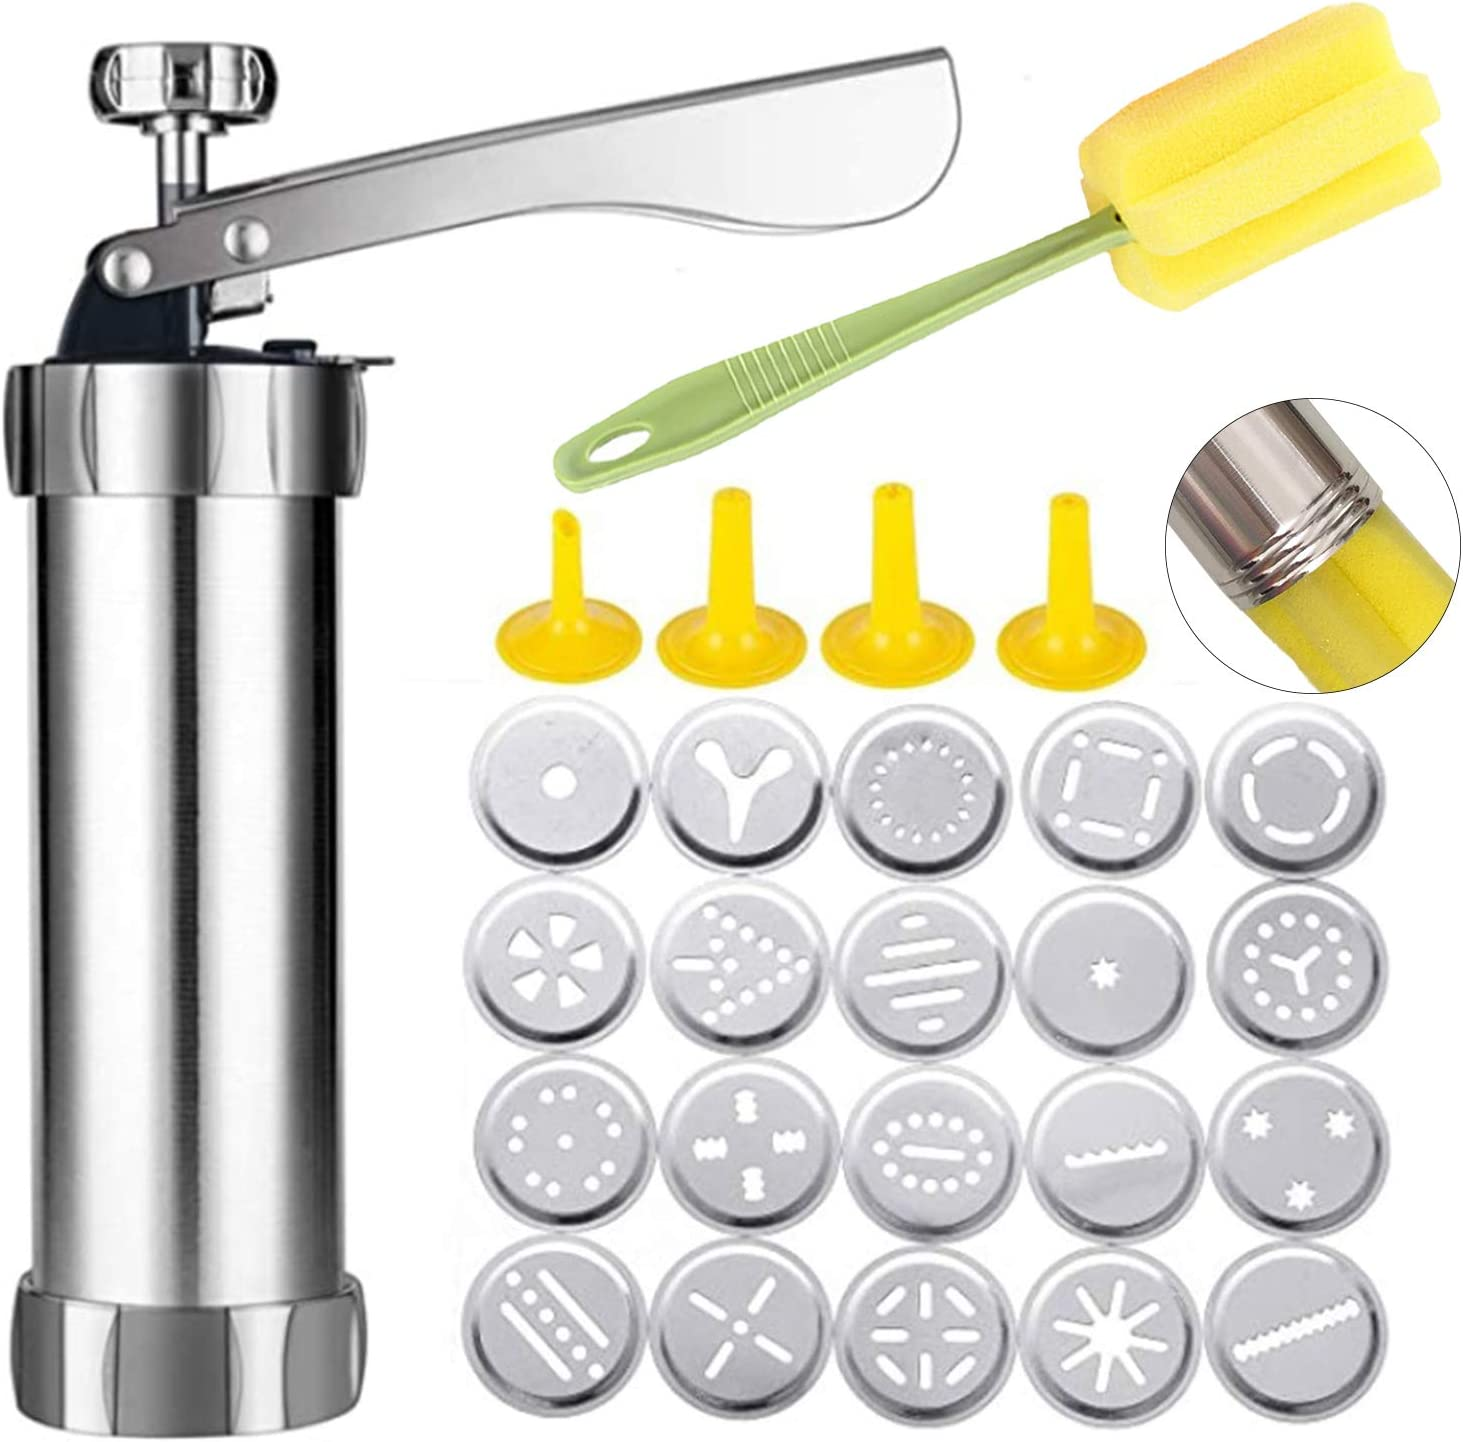 Spritz Cookie Press Gun Kit, Stainless Steel Biscuit Press Cookie Gun Set with 20 Cookie discs and 4 nozzles for DIY Biscuit Maker and Churro Maker - Silver